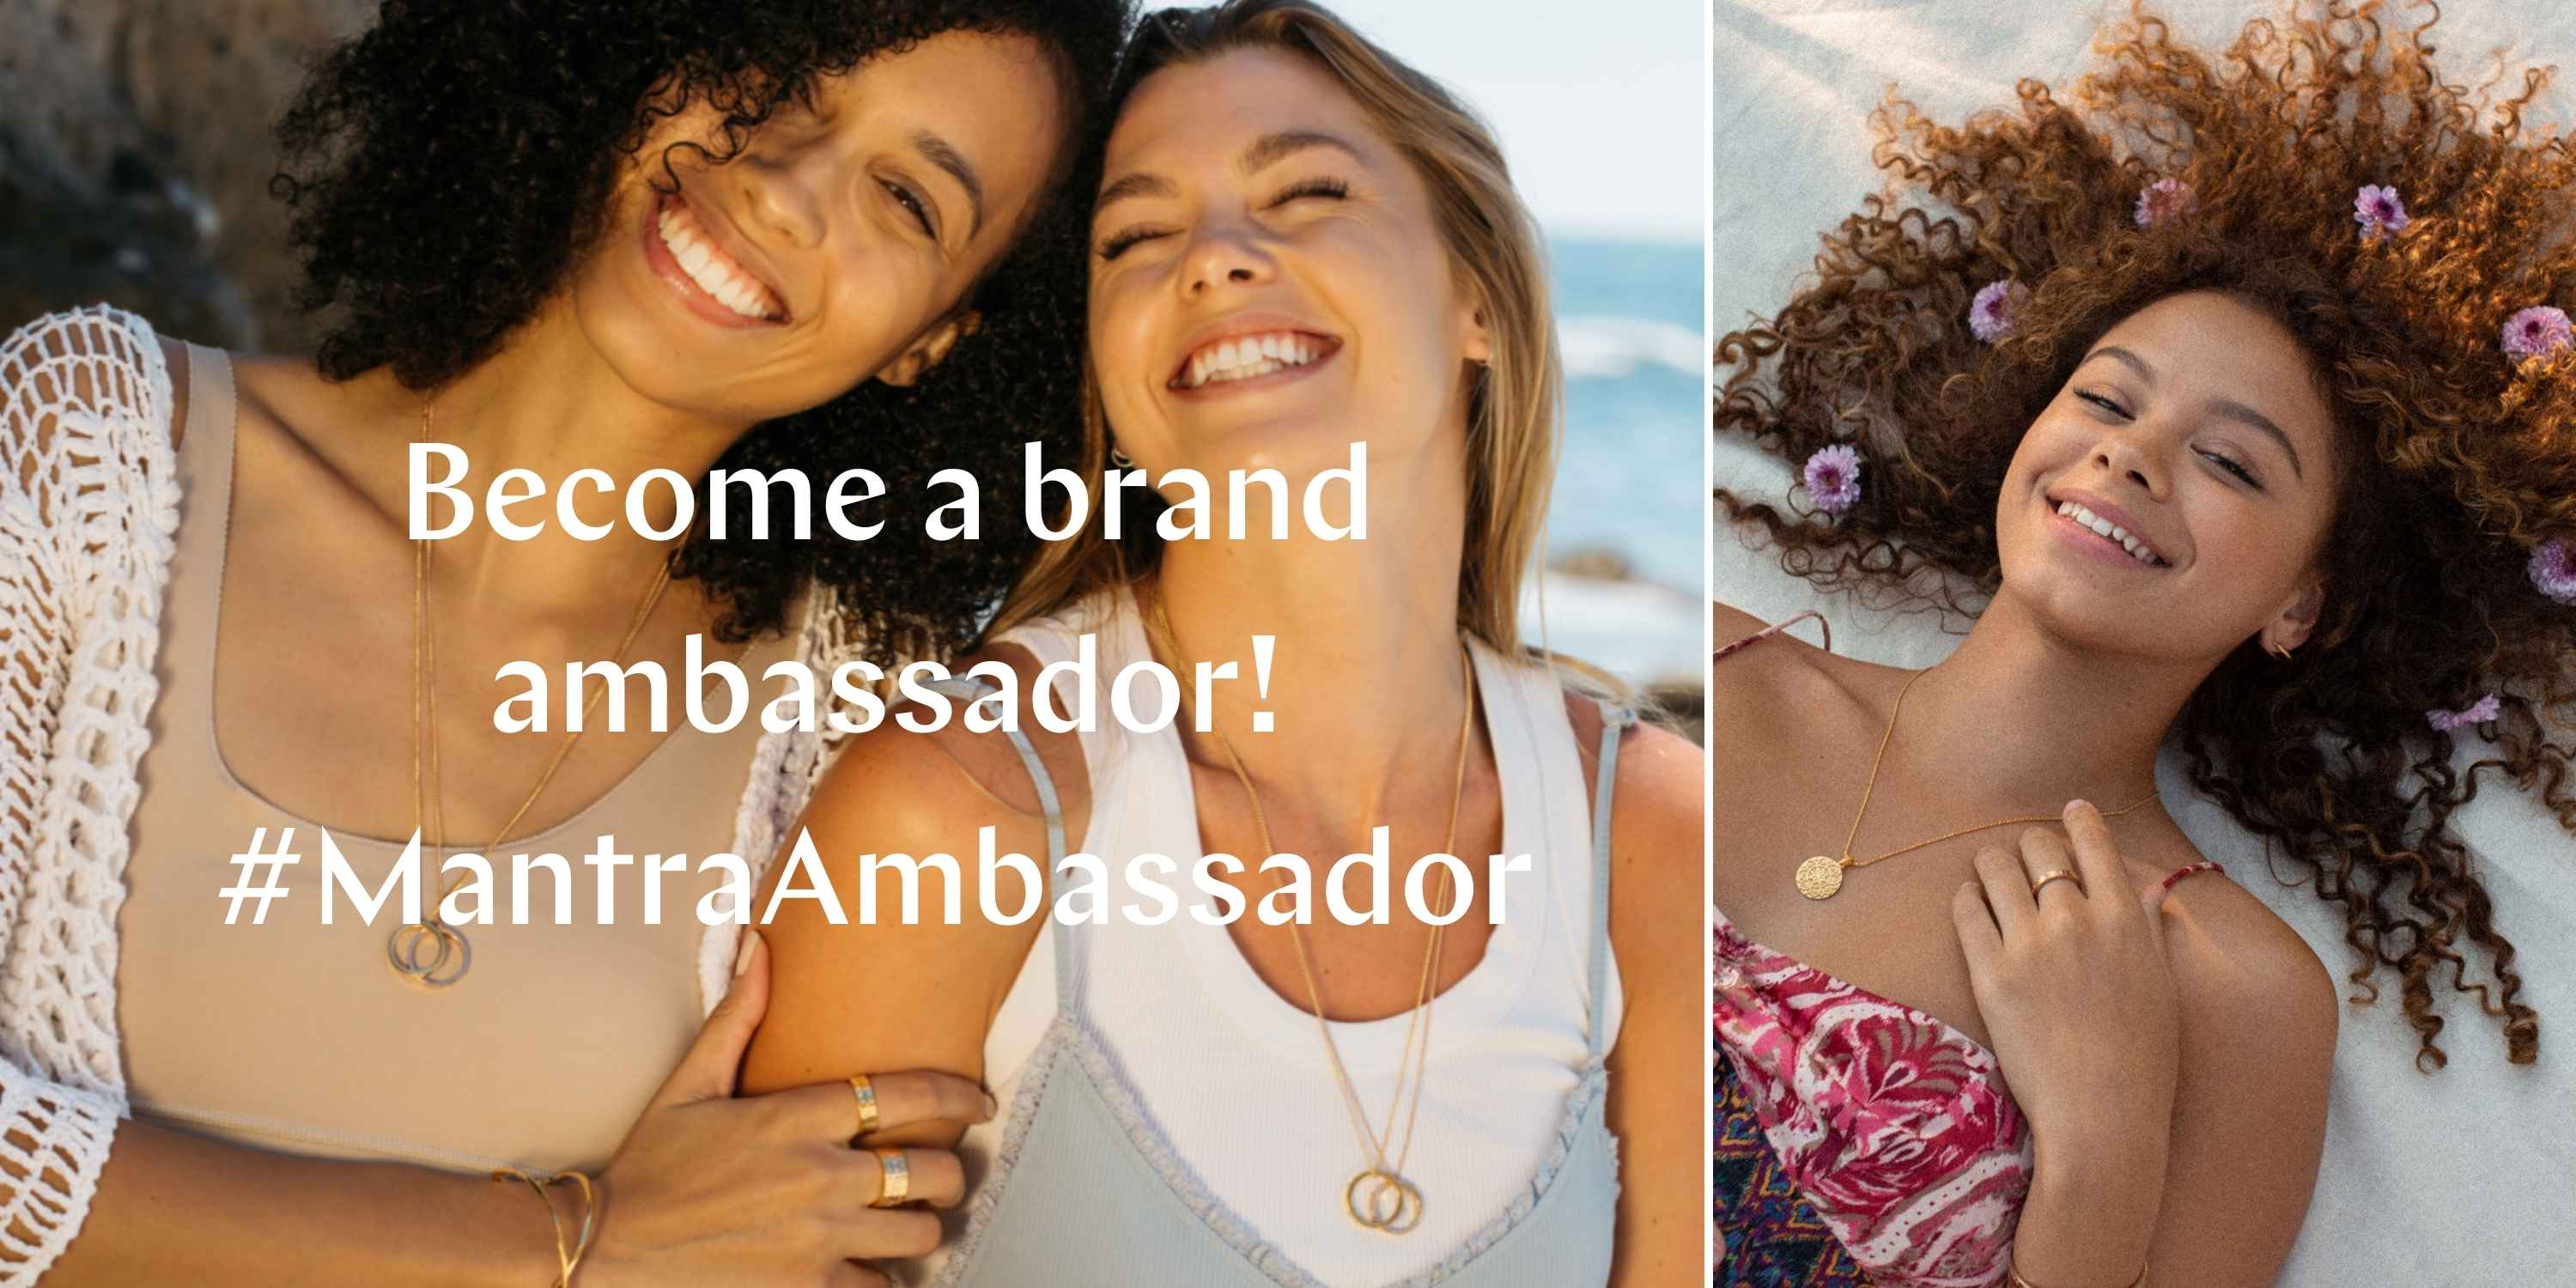 Become a brand ambassador #MantraAmbassador. Two Mantra Ambassadors are smiling in this image wearing their inspirational MantraBand jewelry.